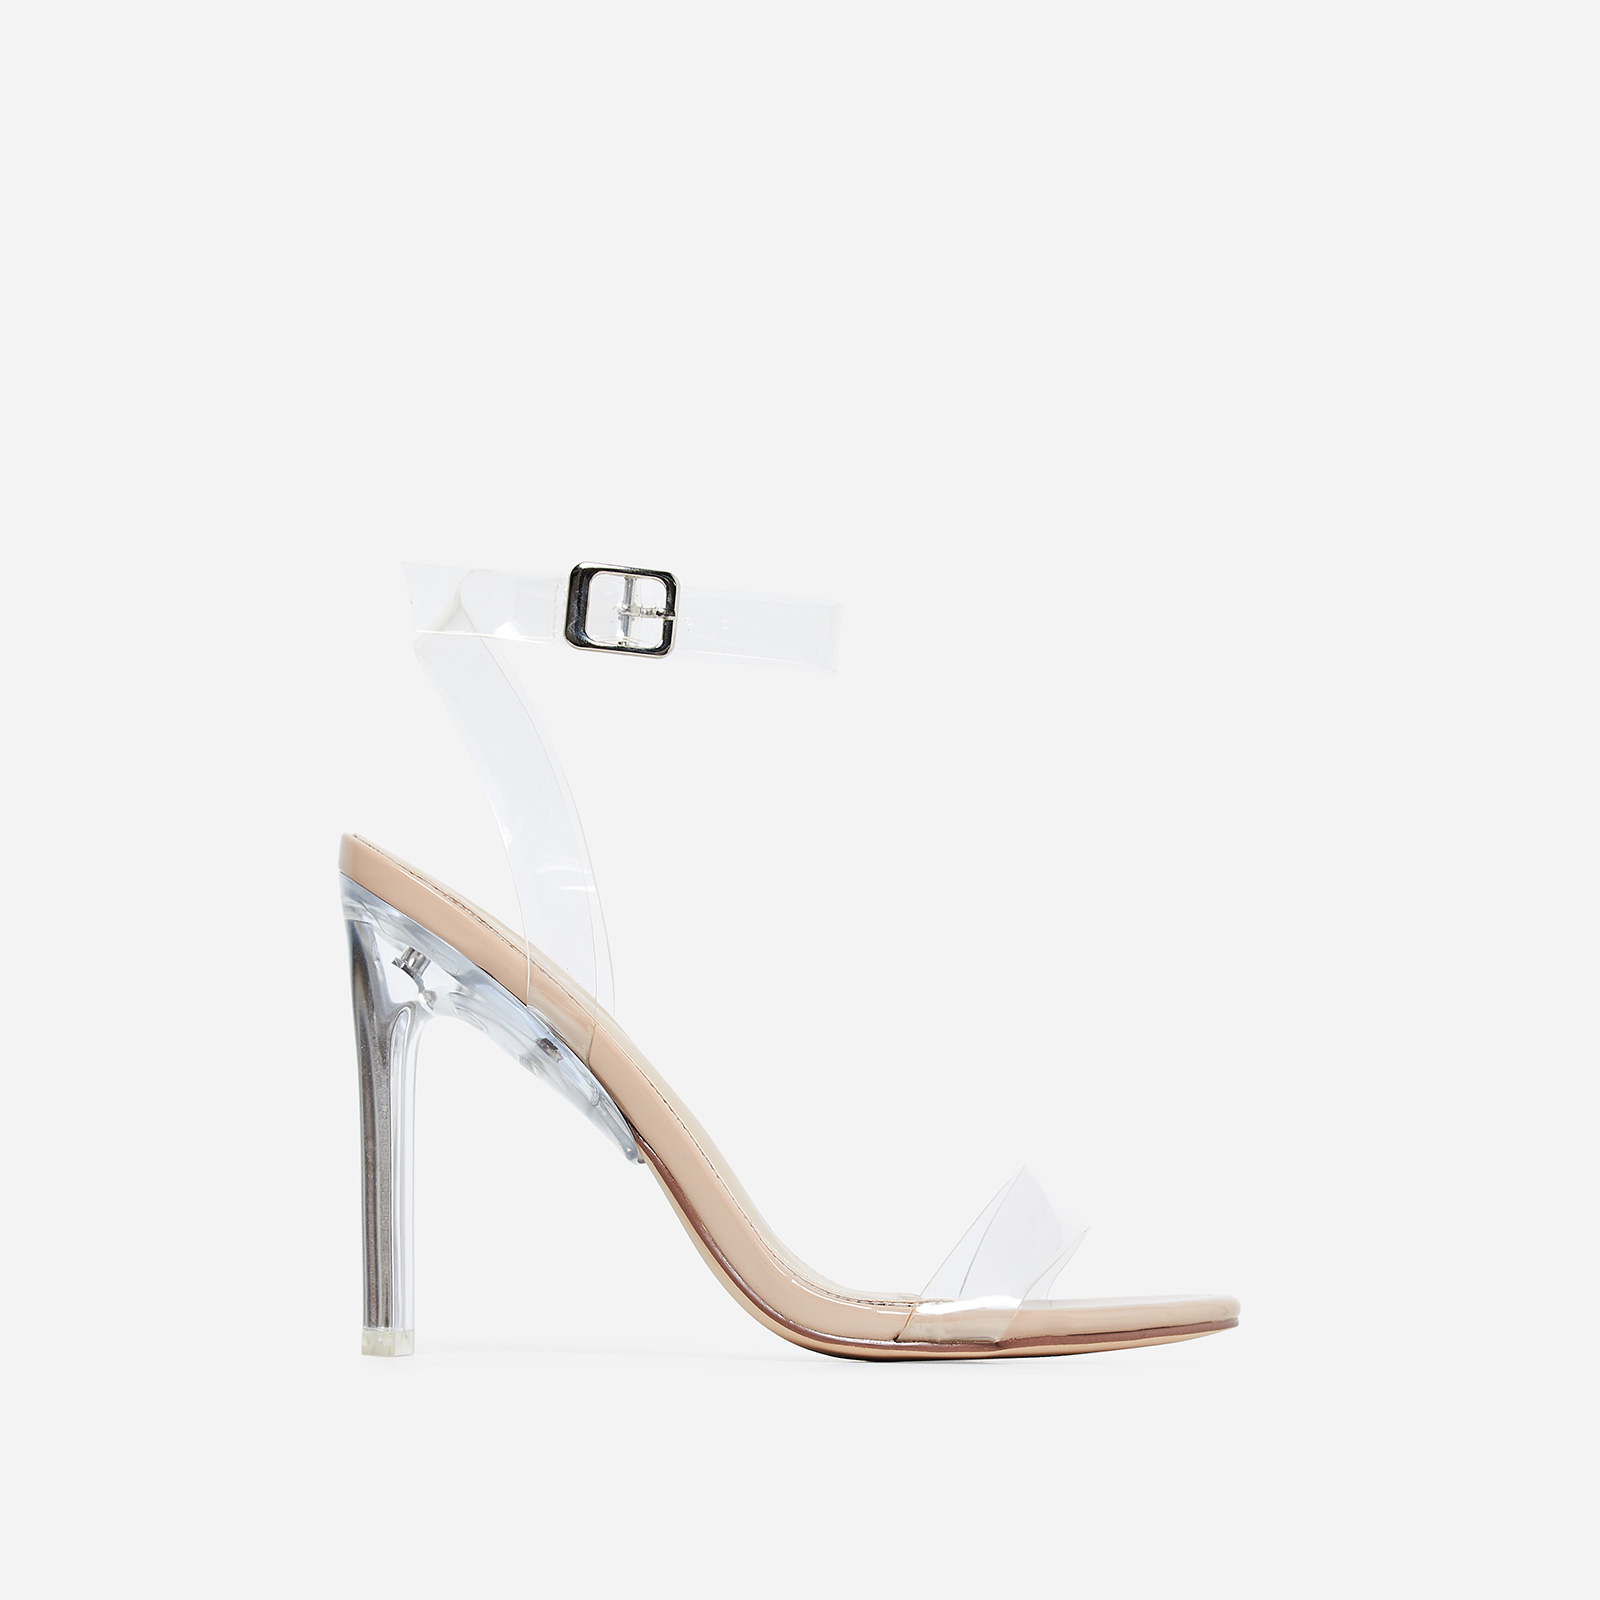 Invisible Barely There Flat Perspex Heel In Nude Patent